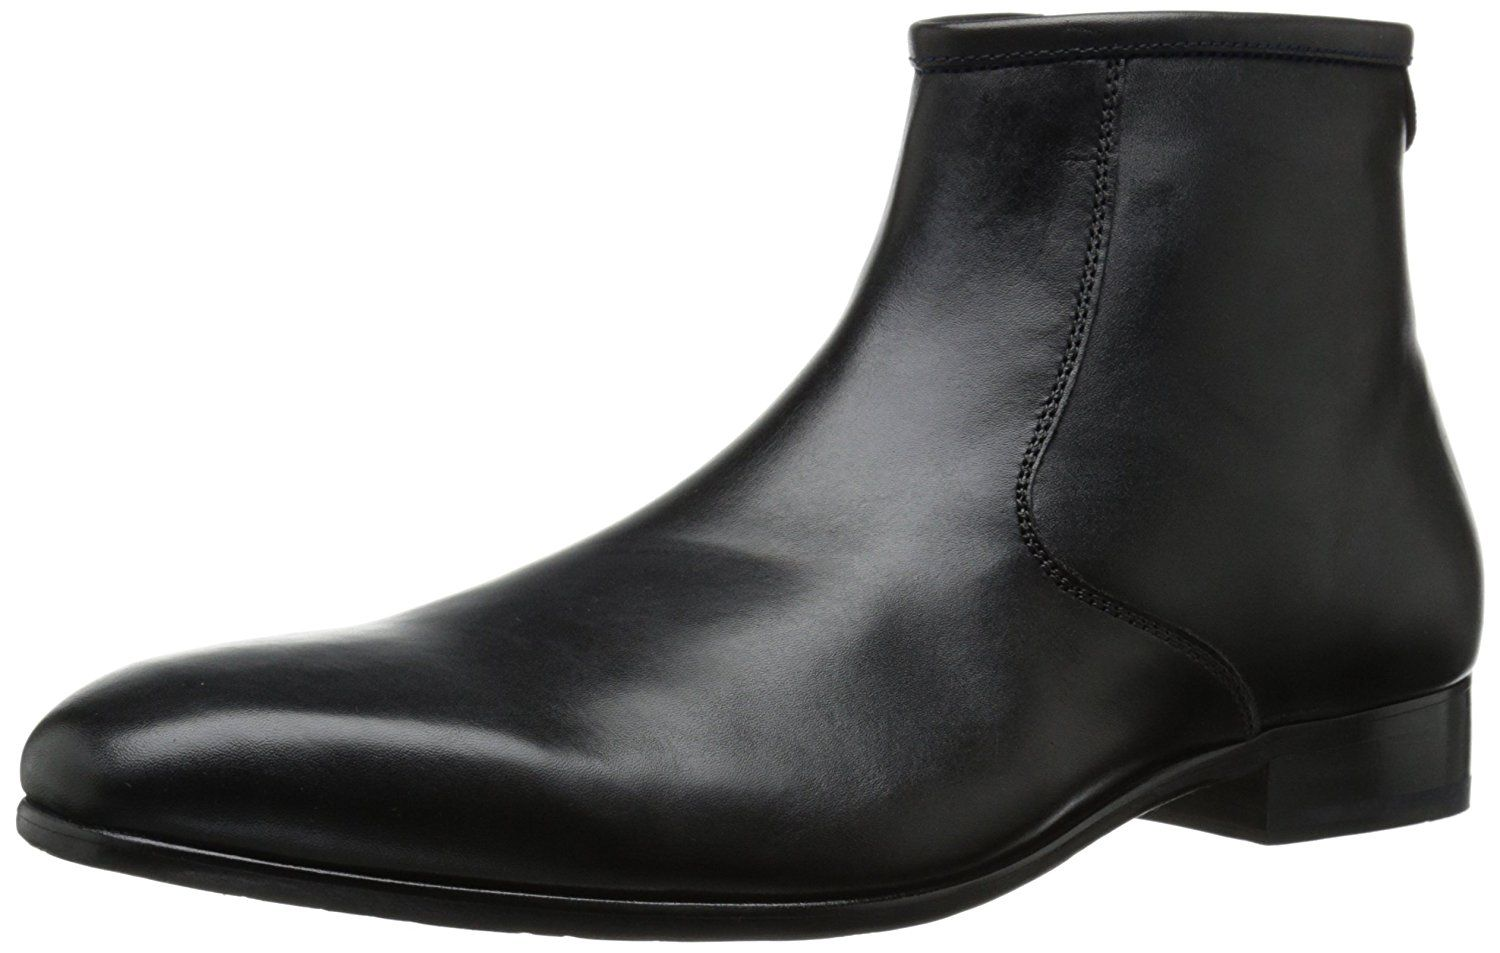 Ted Baker Men S Brysen Boot Startling Review Available Here Men S Boots Boots Chelsea Boots Ted Baker Men